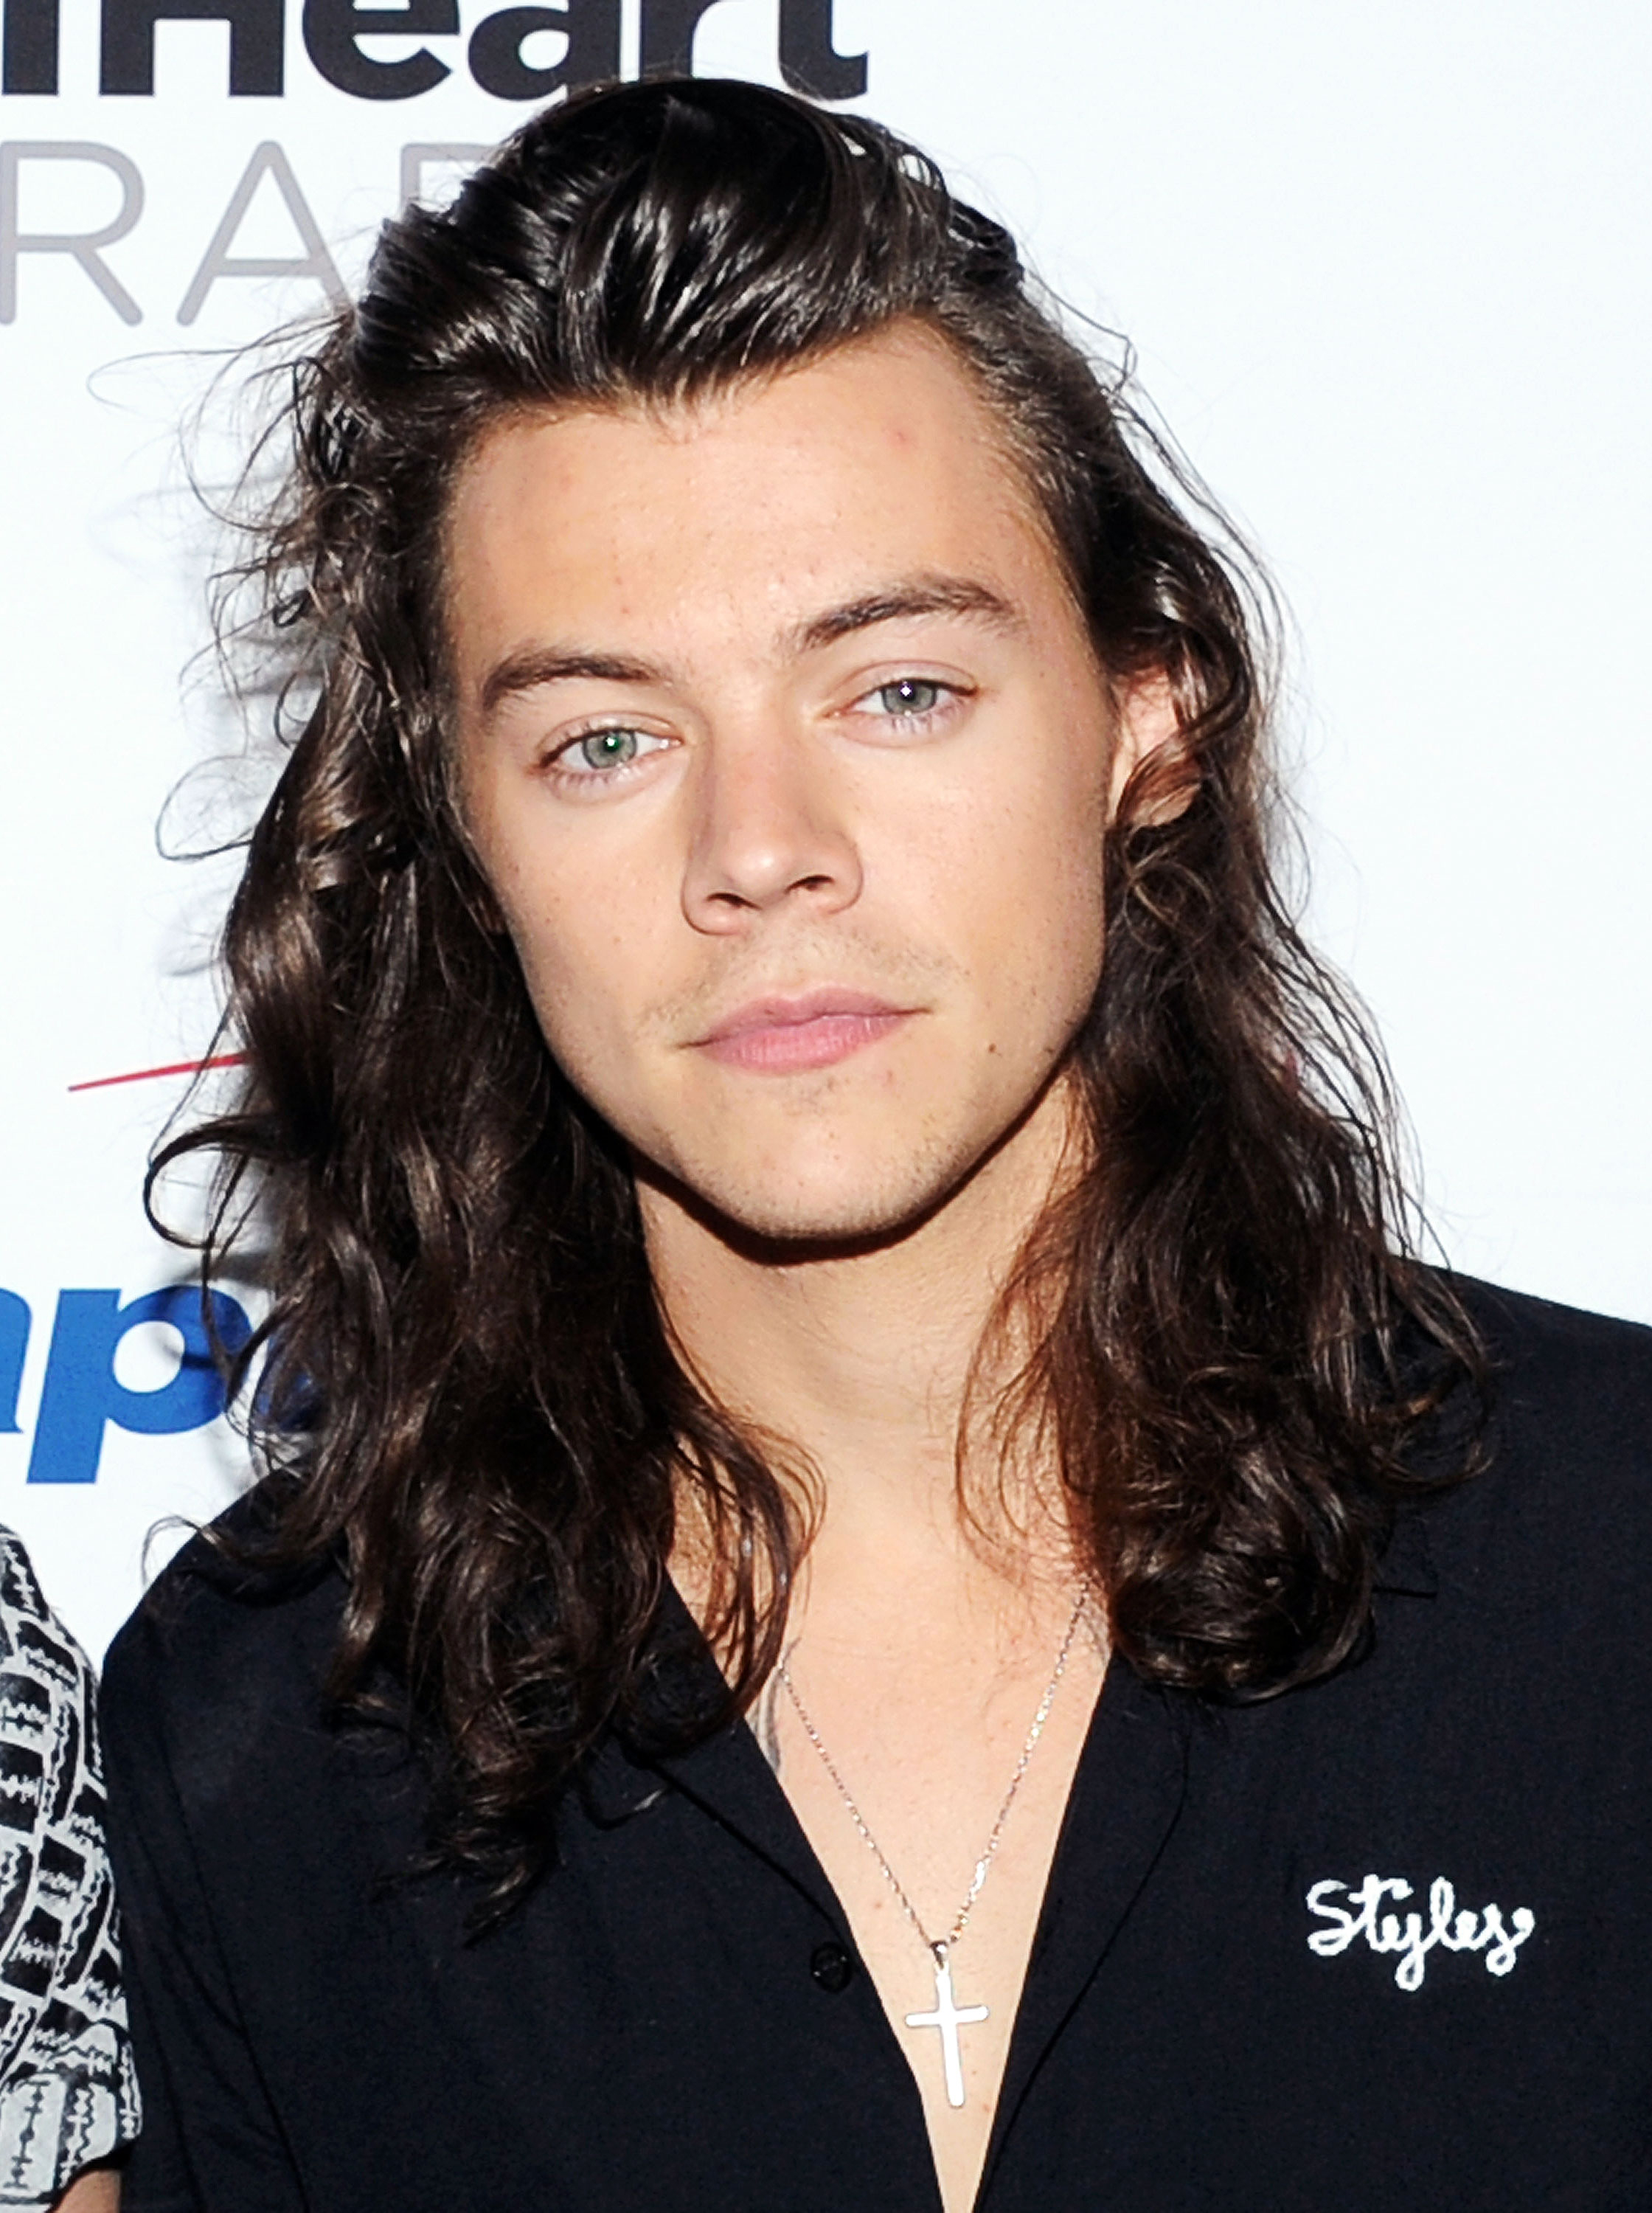 Harry Styles Rocks Long Hair Again for \u0027AnOther Man\u0027 Magazine